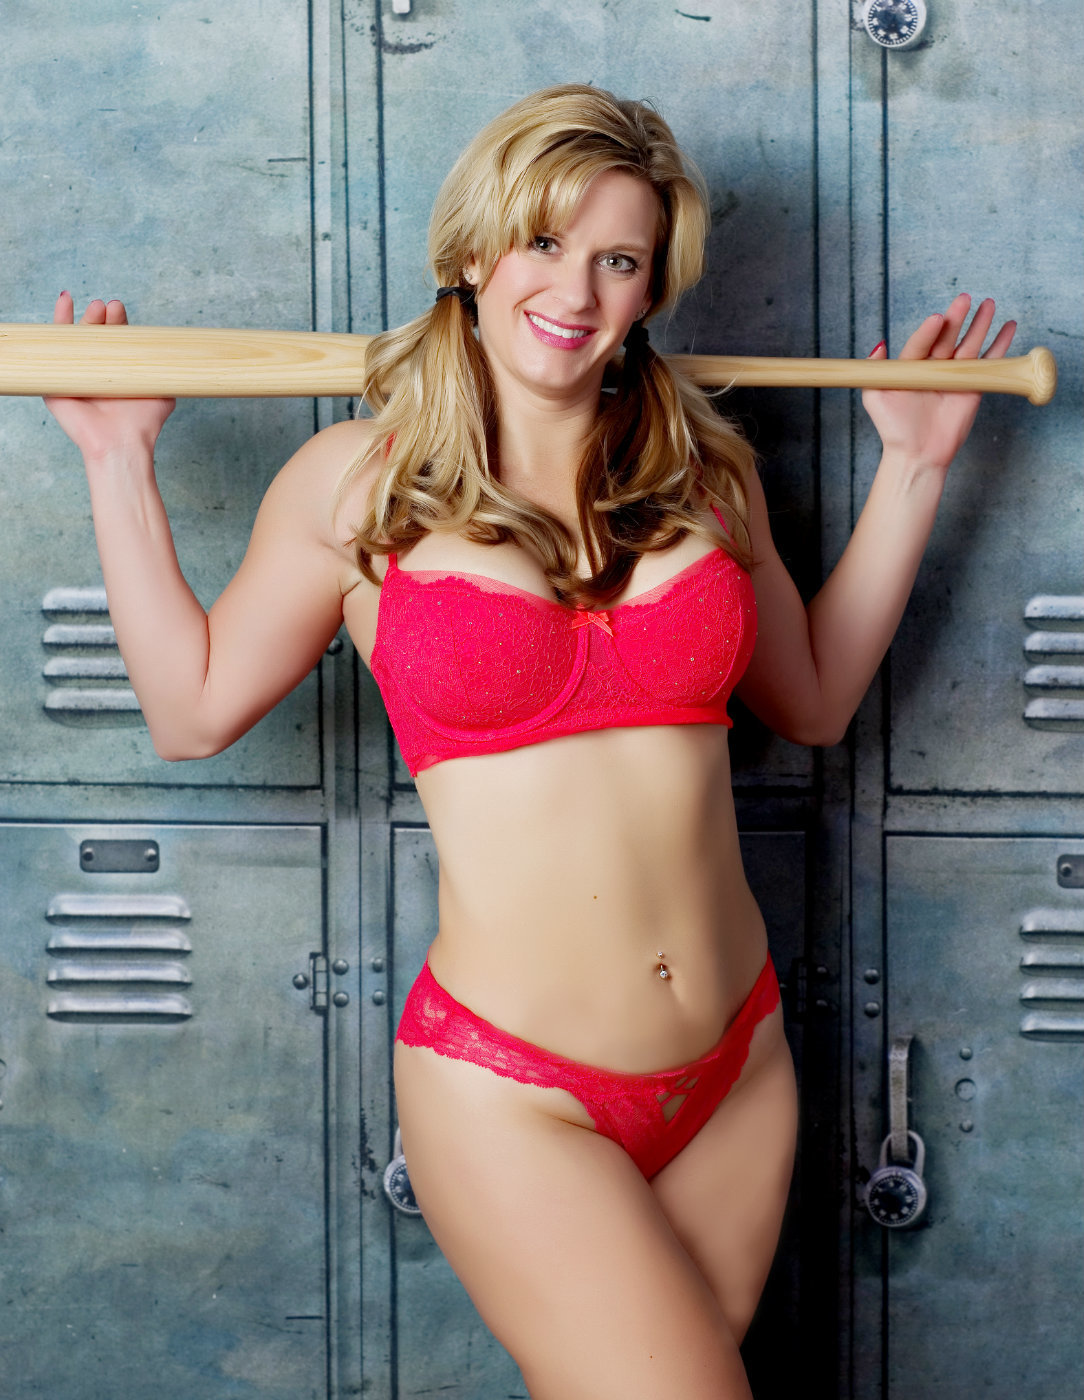 sports boudoir image showing a woman with a baseball bat